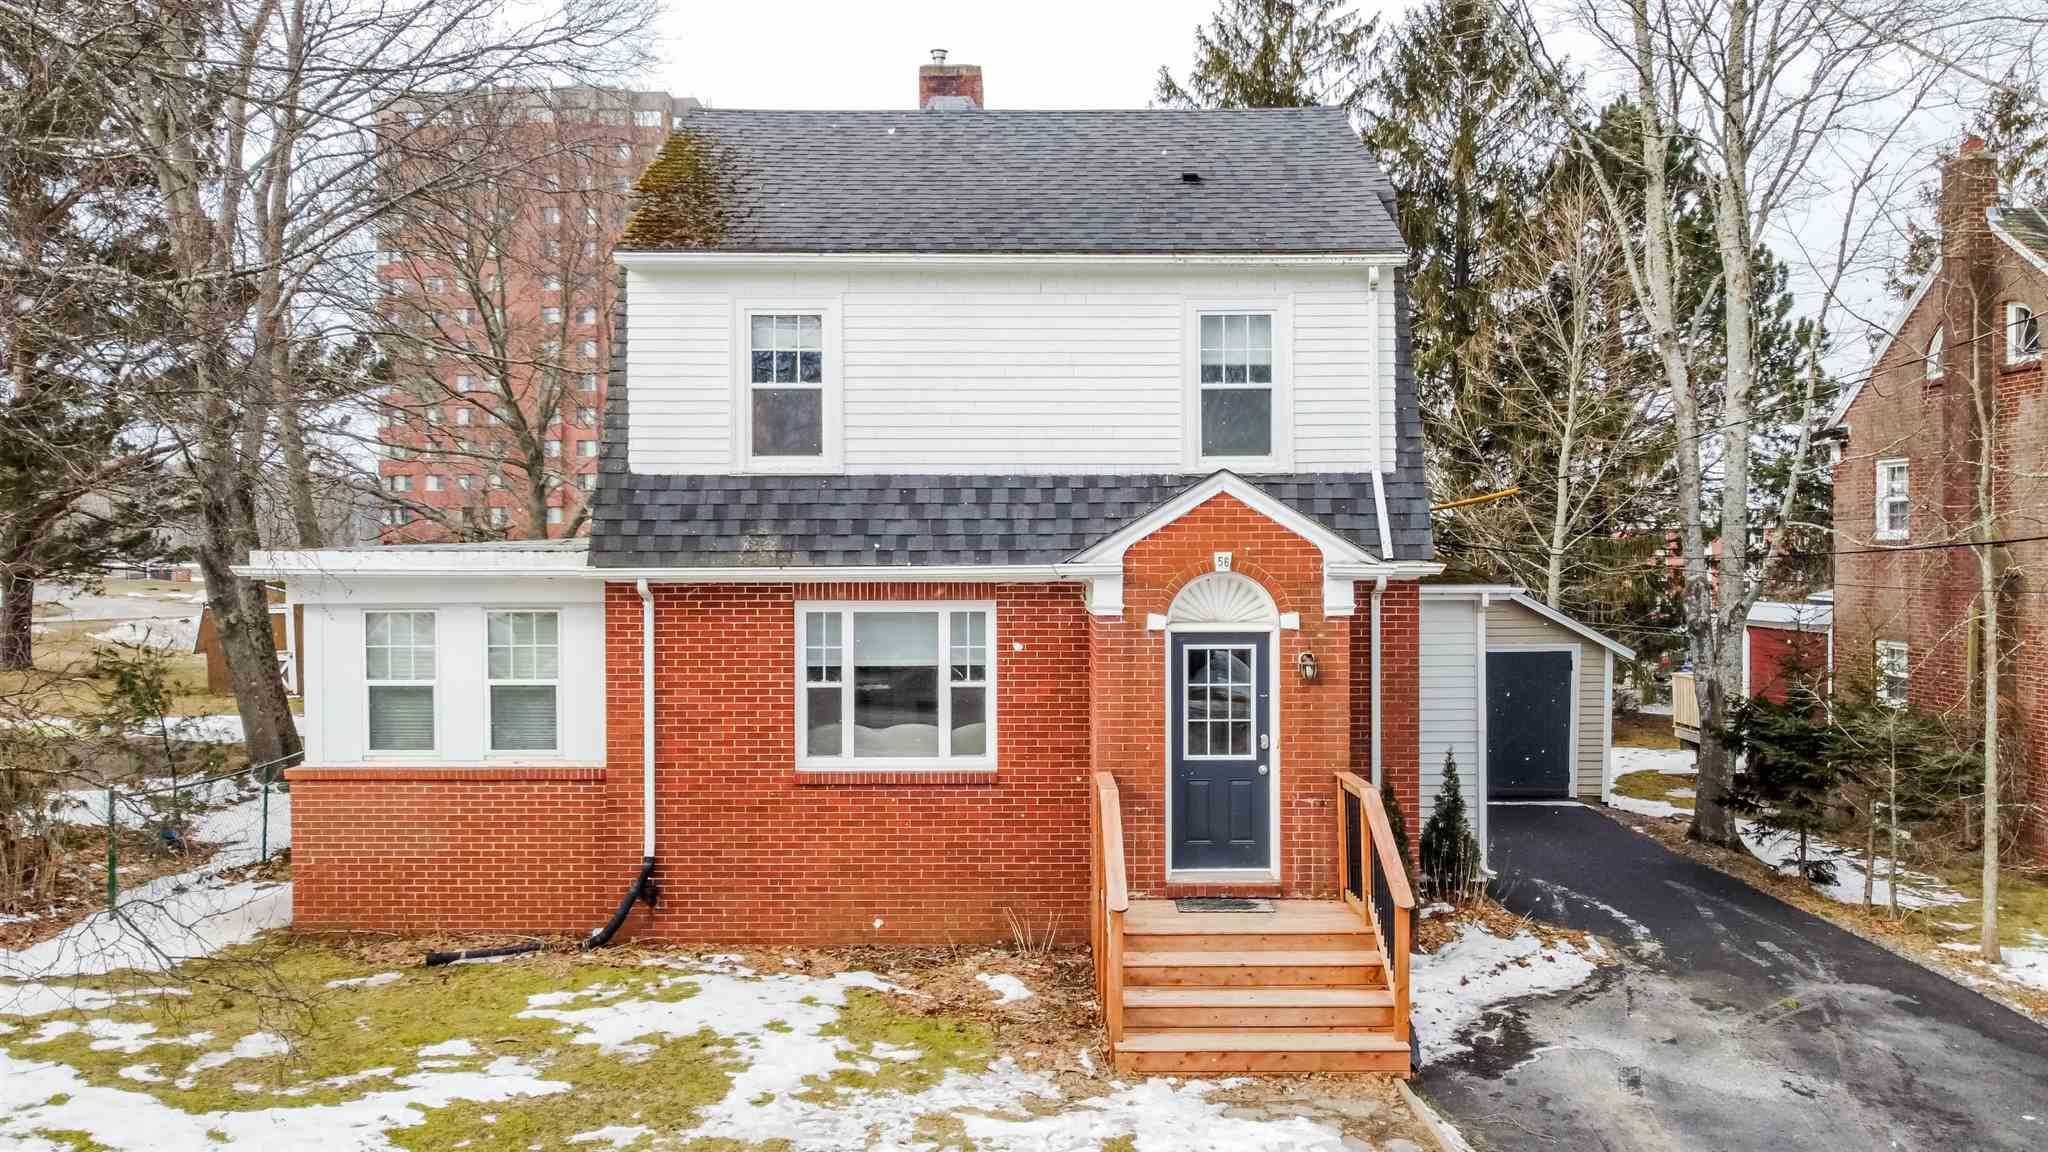 Main Photo: 56 Highland Avenue in Wolfville: 404-Kings County Residential for sale (Annapolis Valley)  : MLS®# 202104485